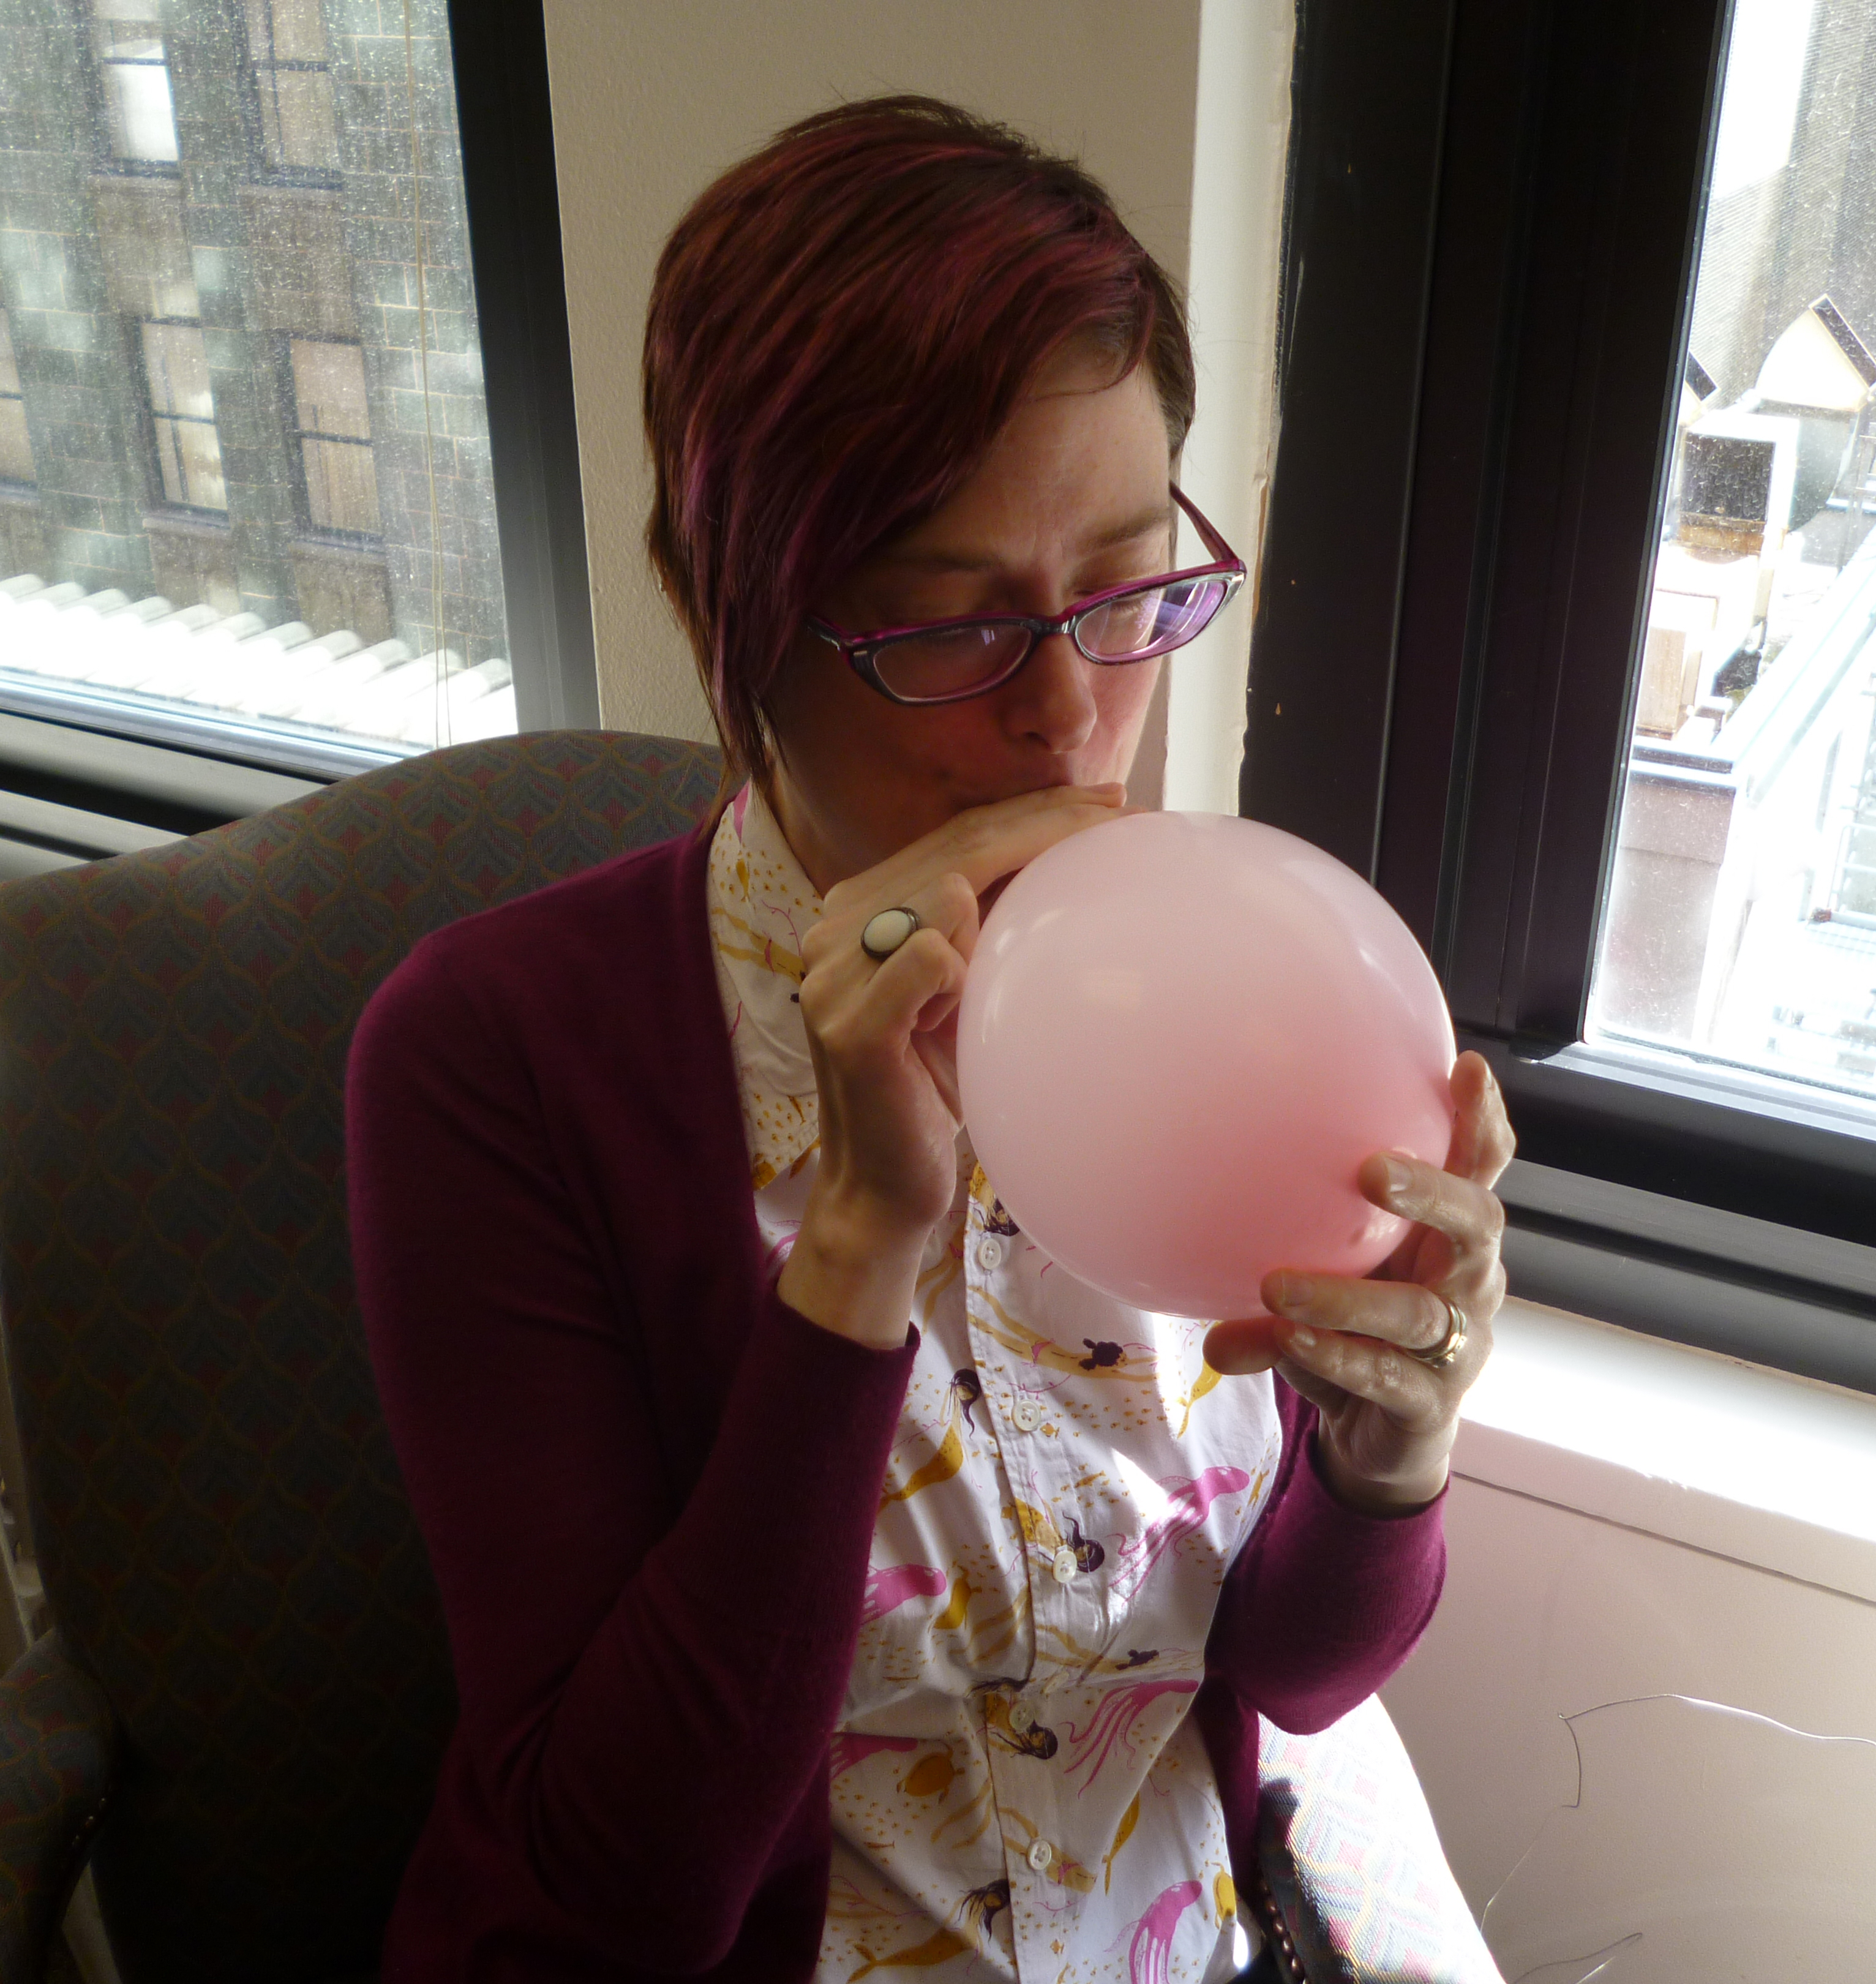 Polly blowing up a balloon 2 cropped